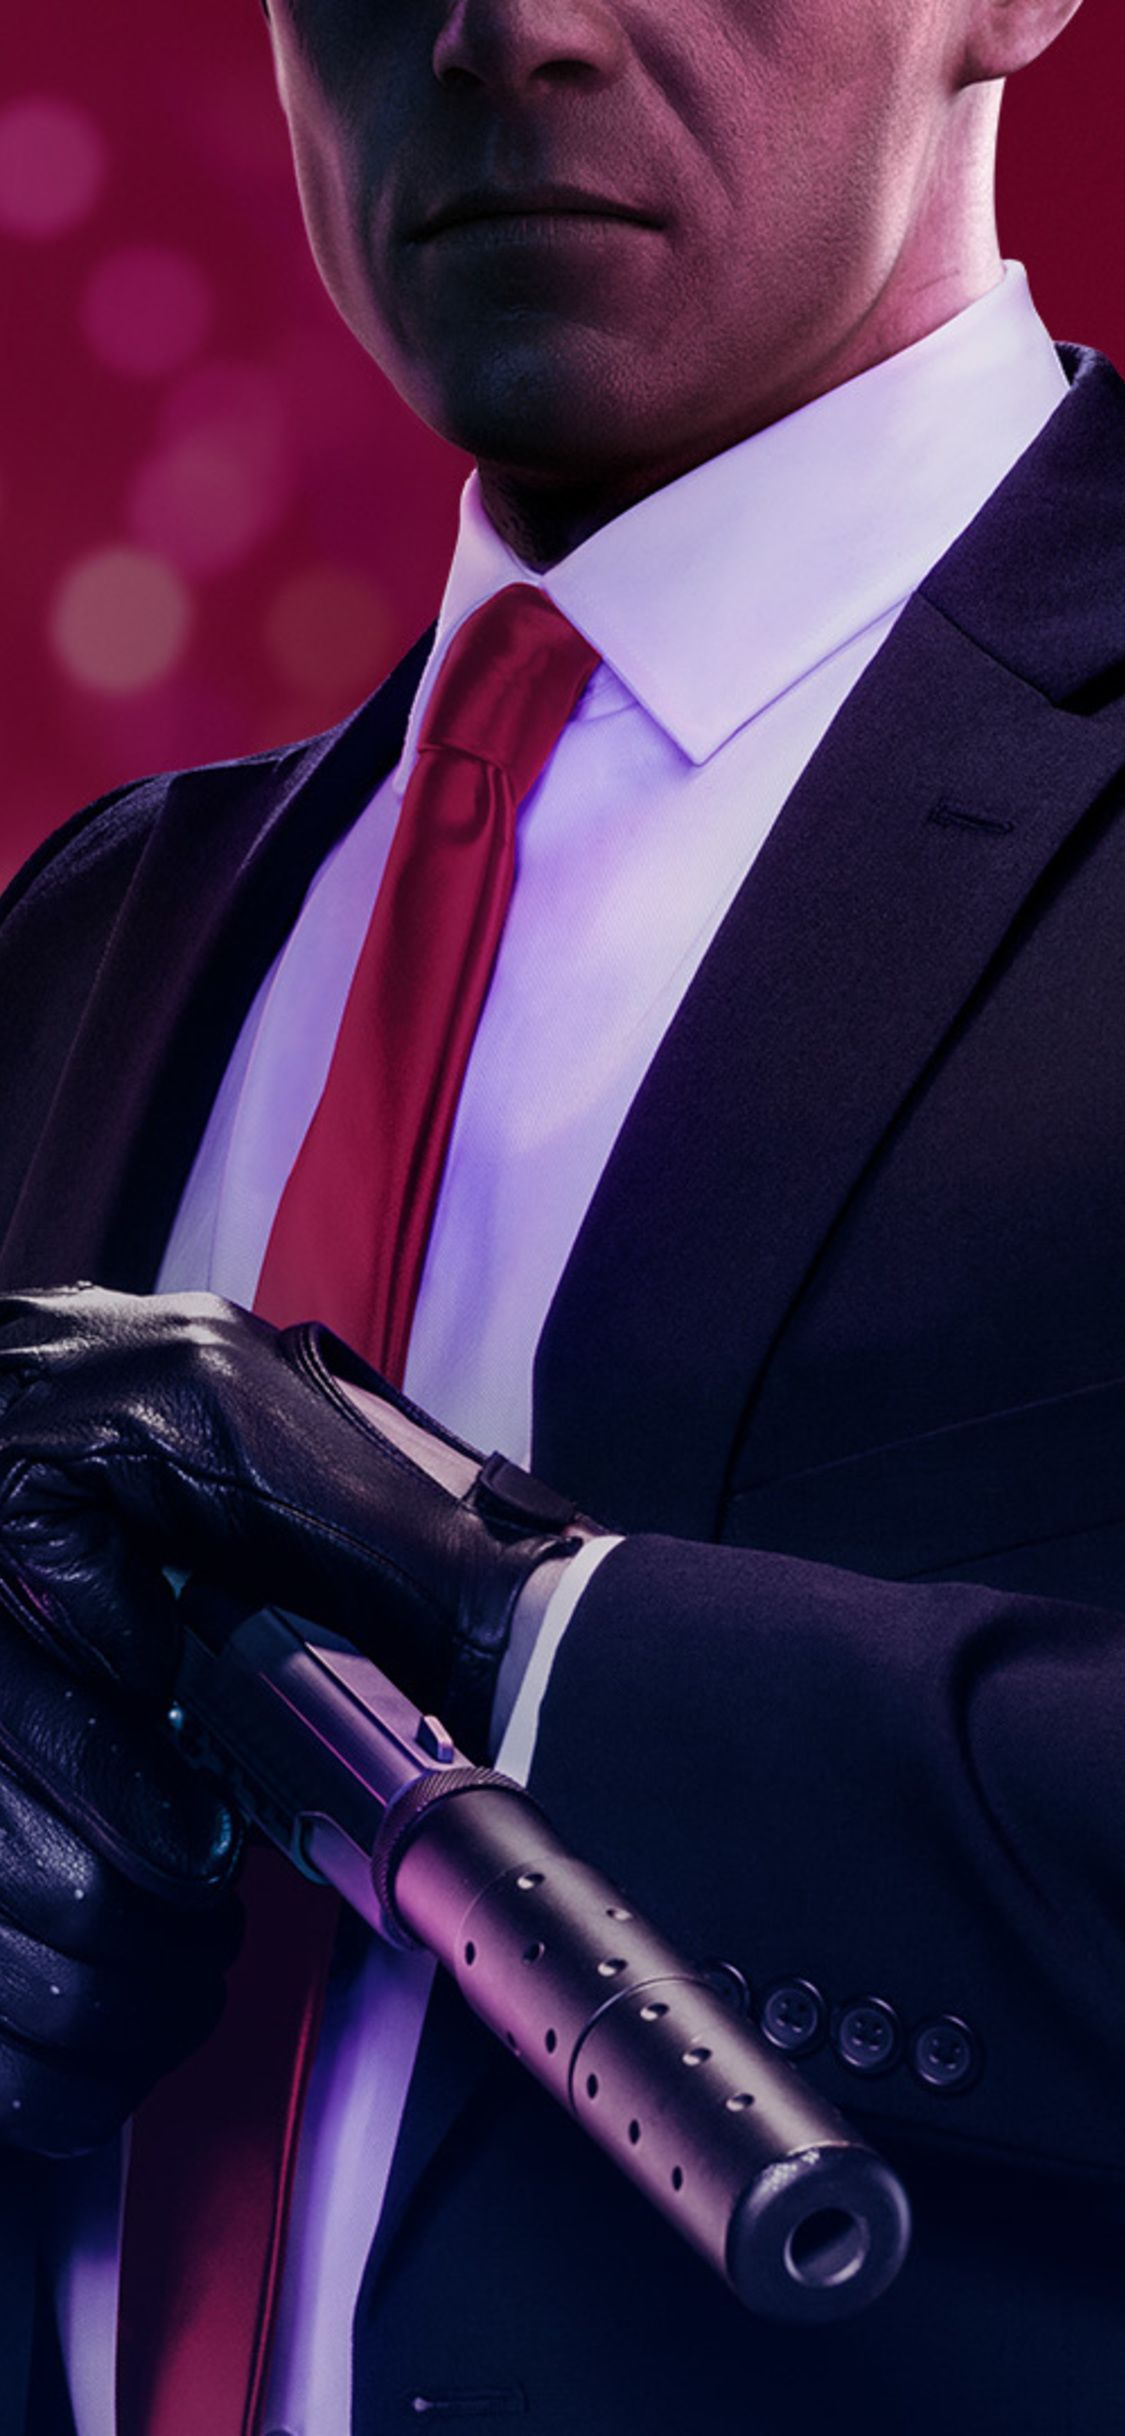 Agent 47 Iphone Wallpapers Top Free Agent 47 Iphone Backgrounds